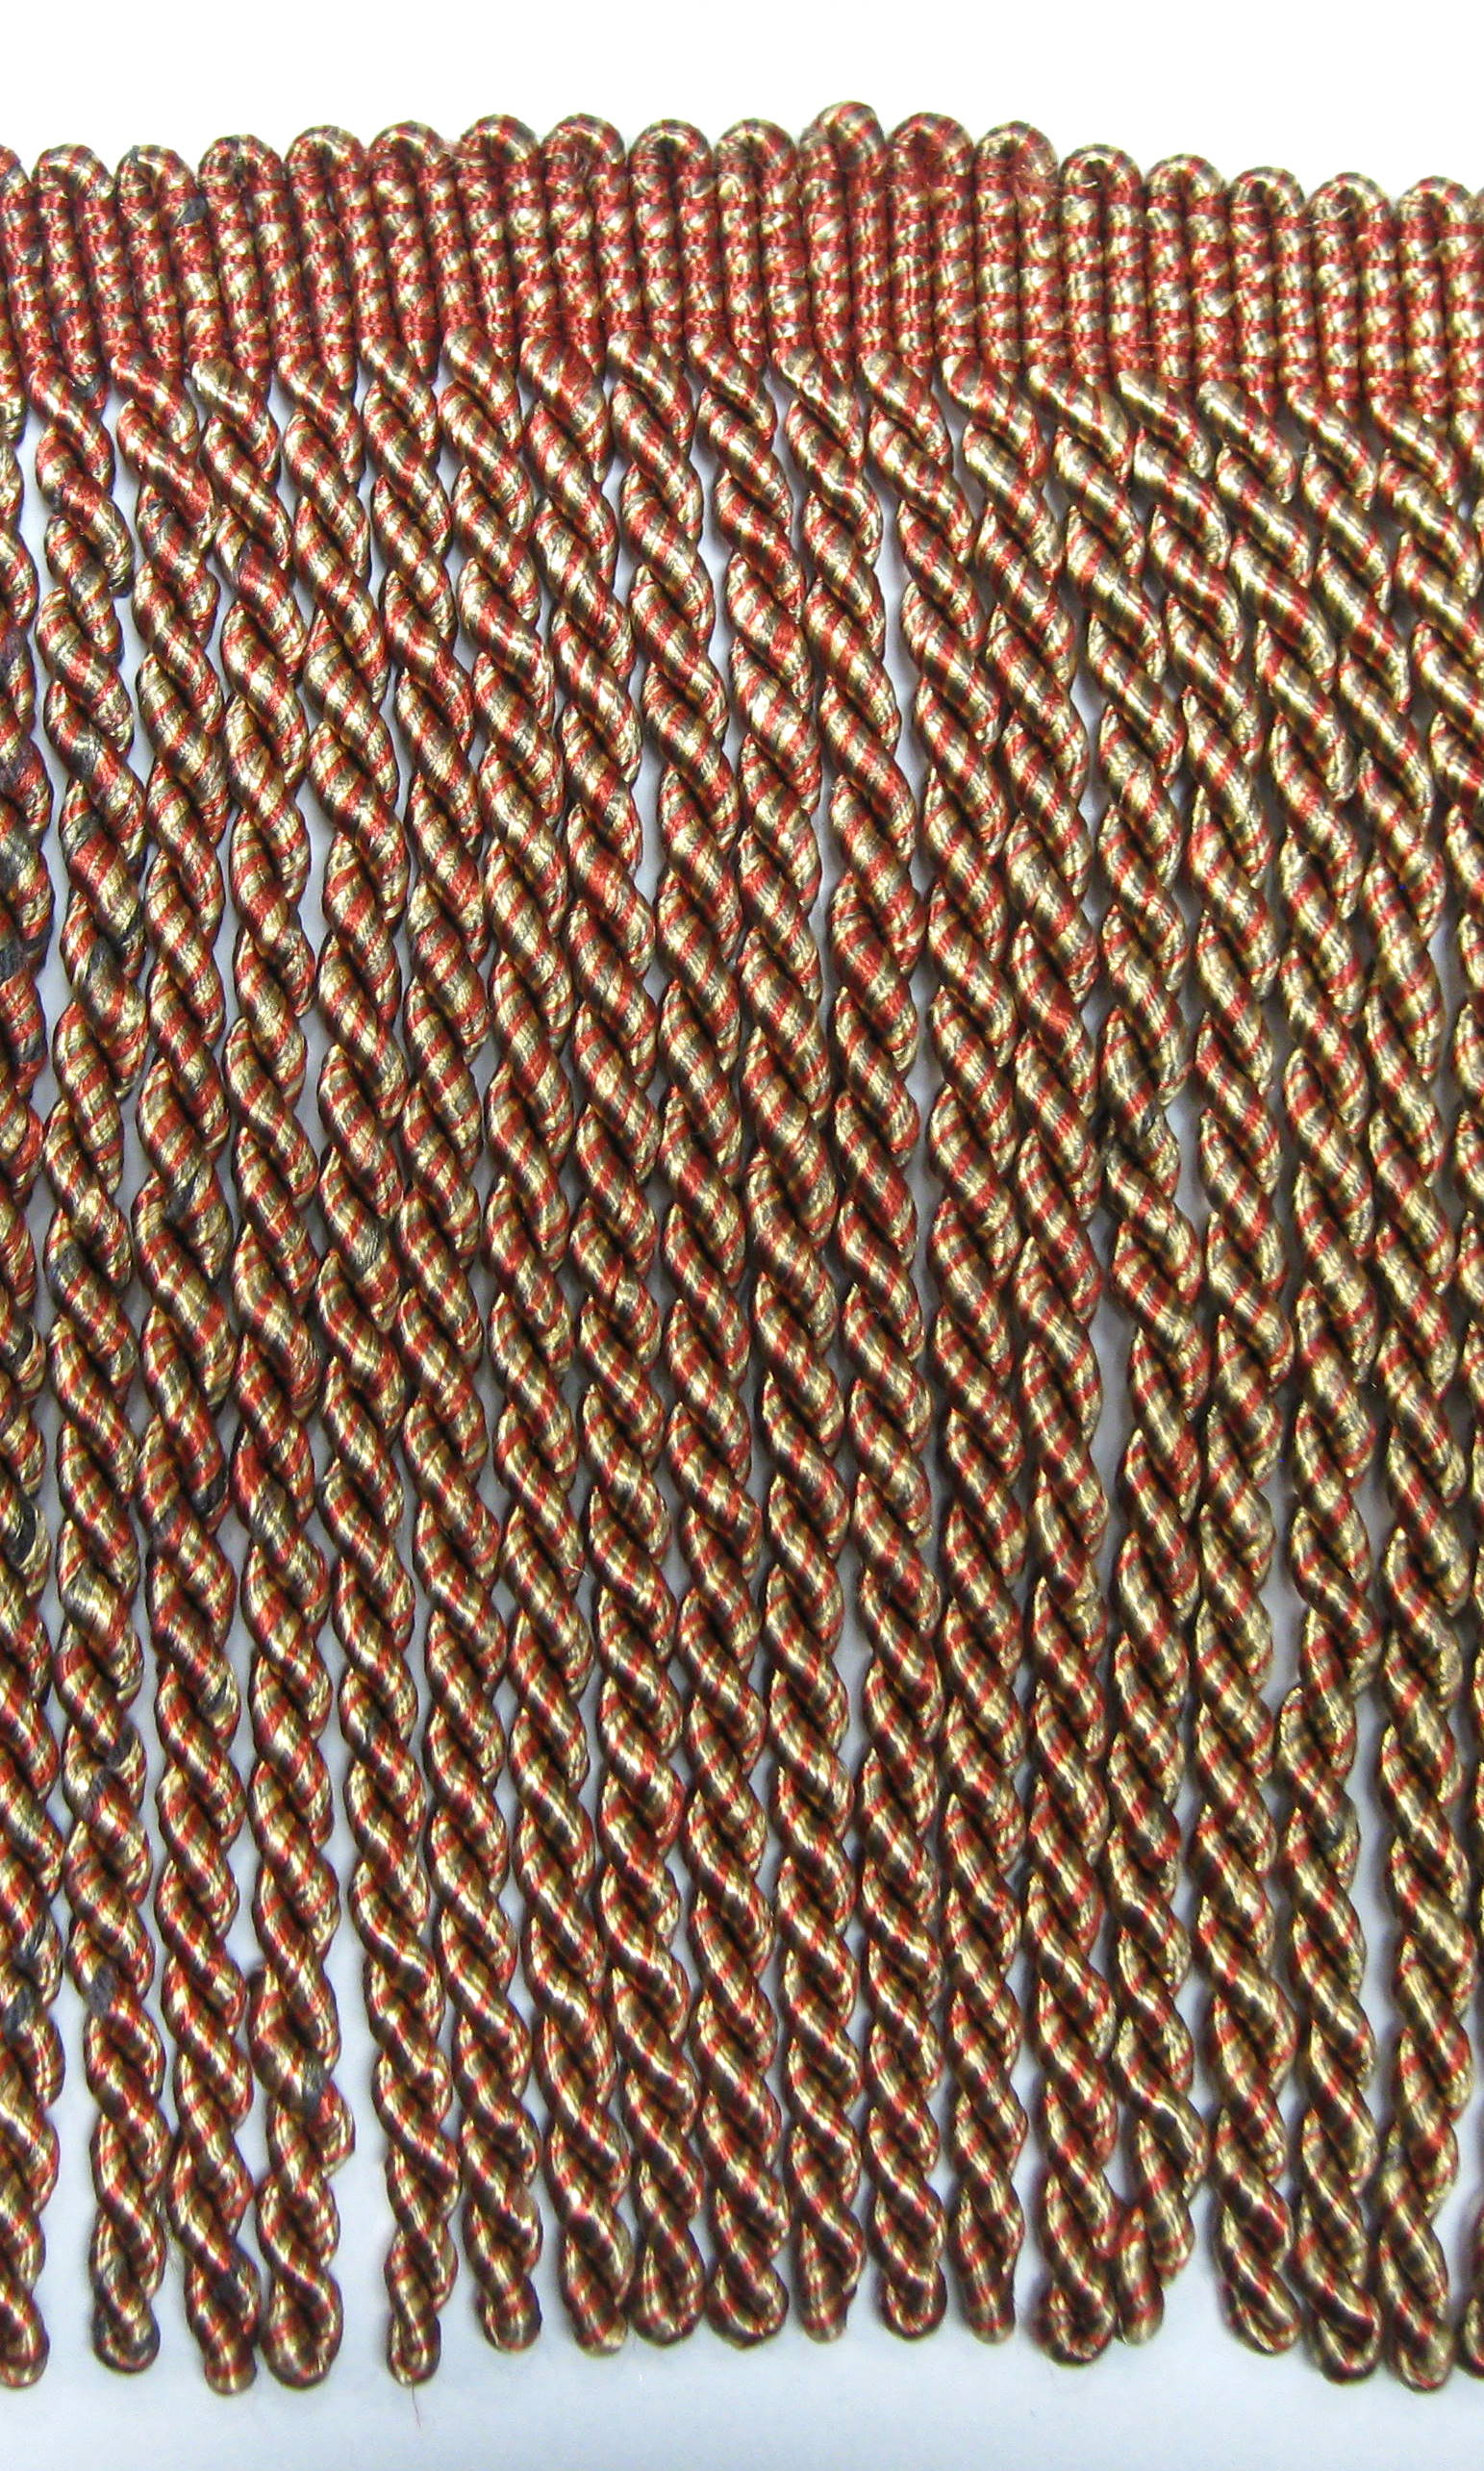 BULLION FRINGE COLOR 123